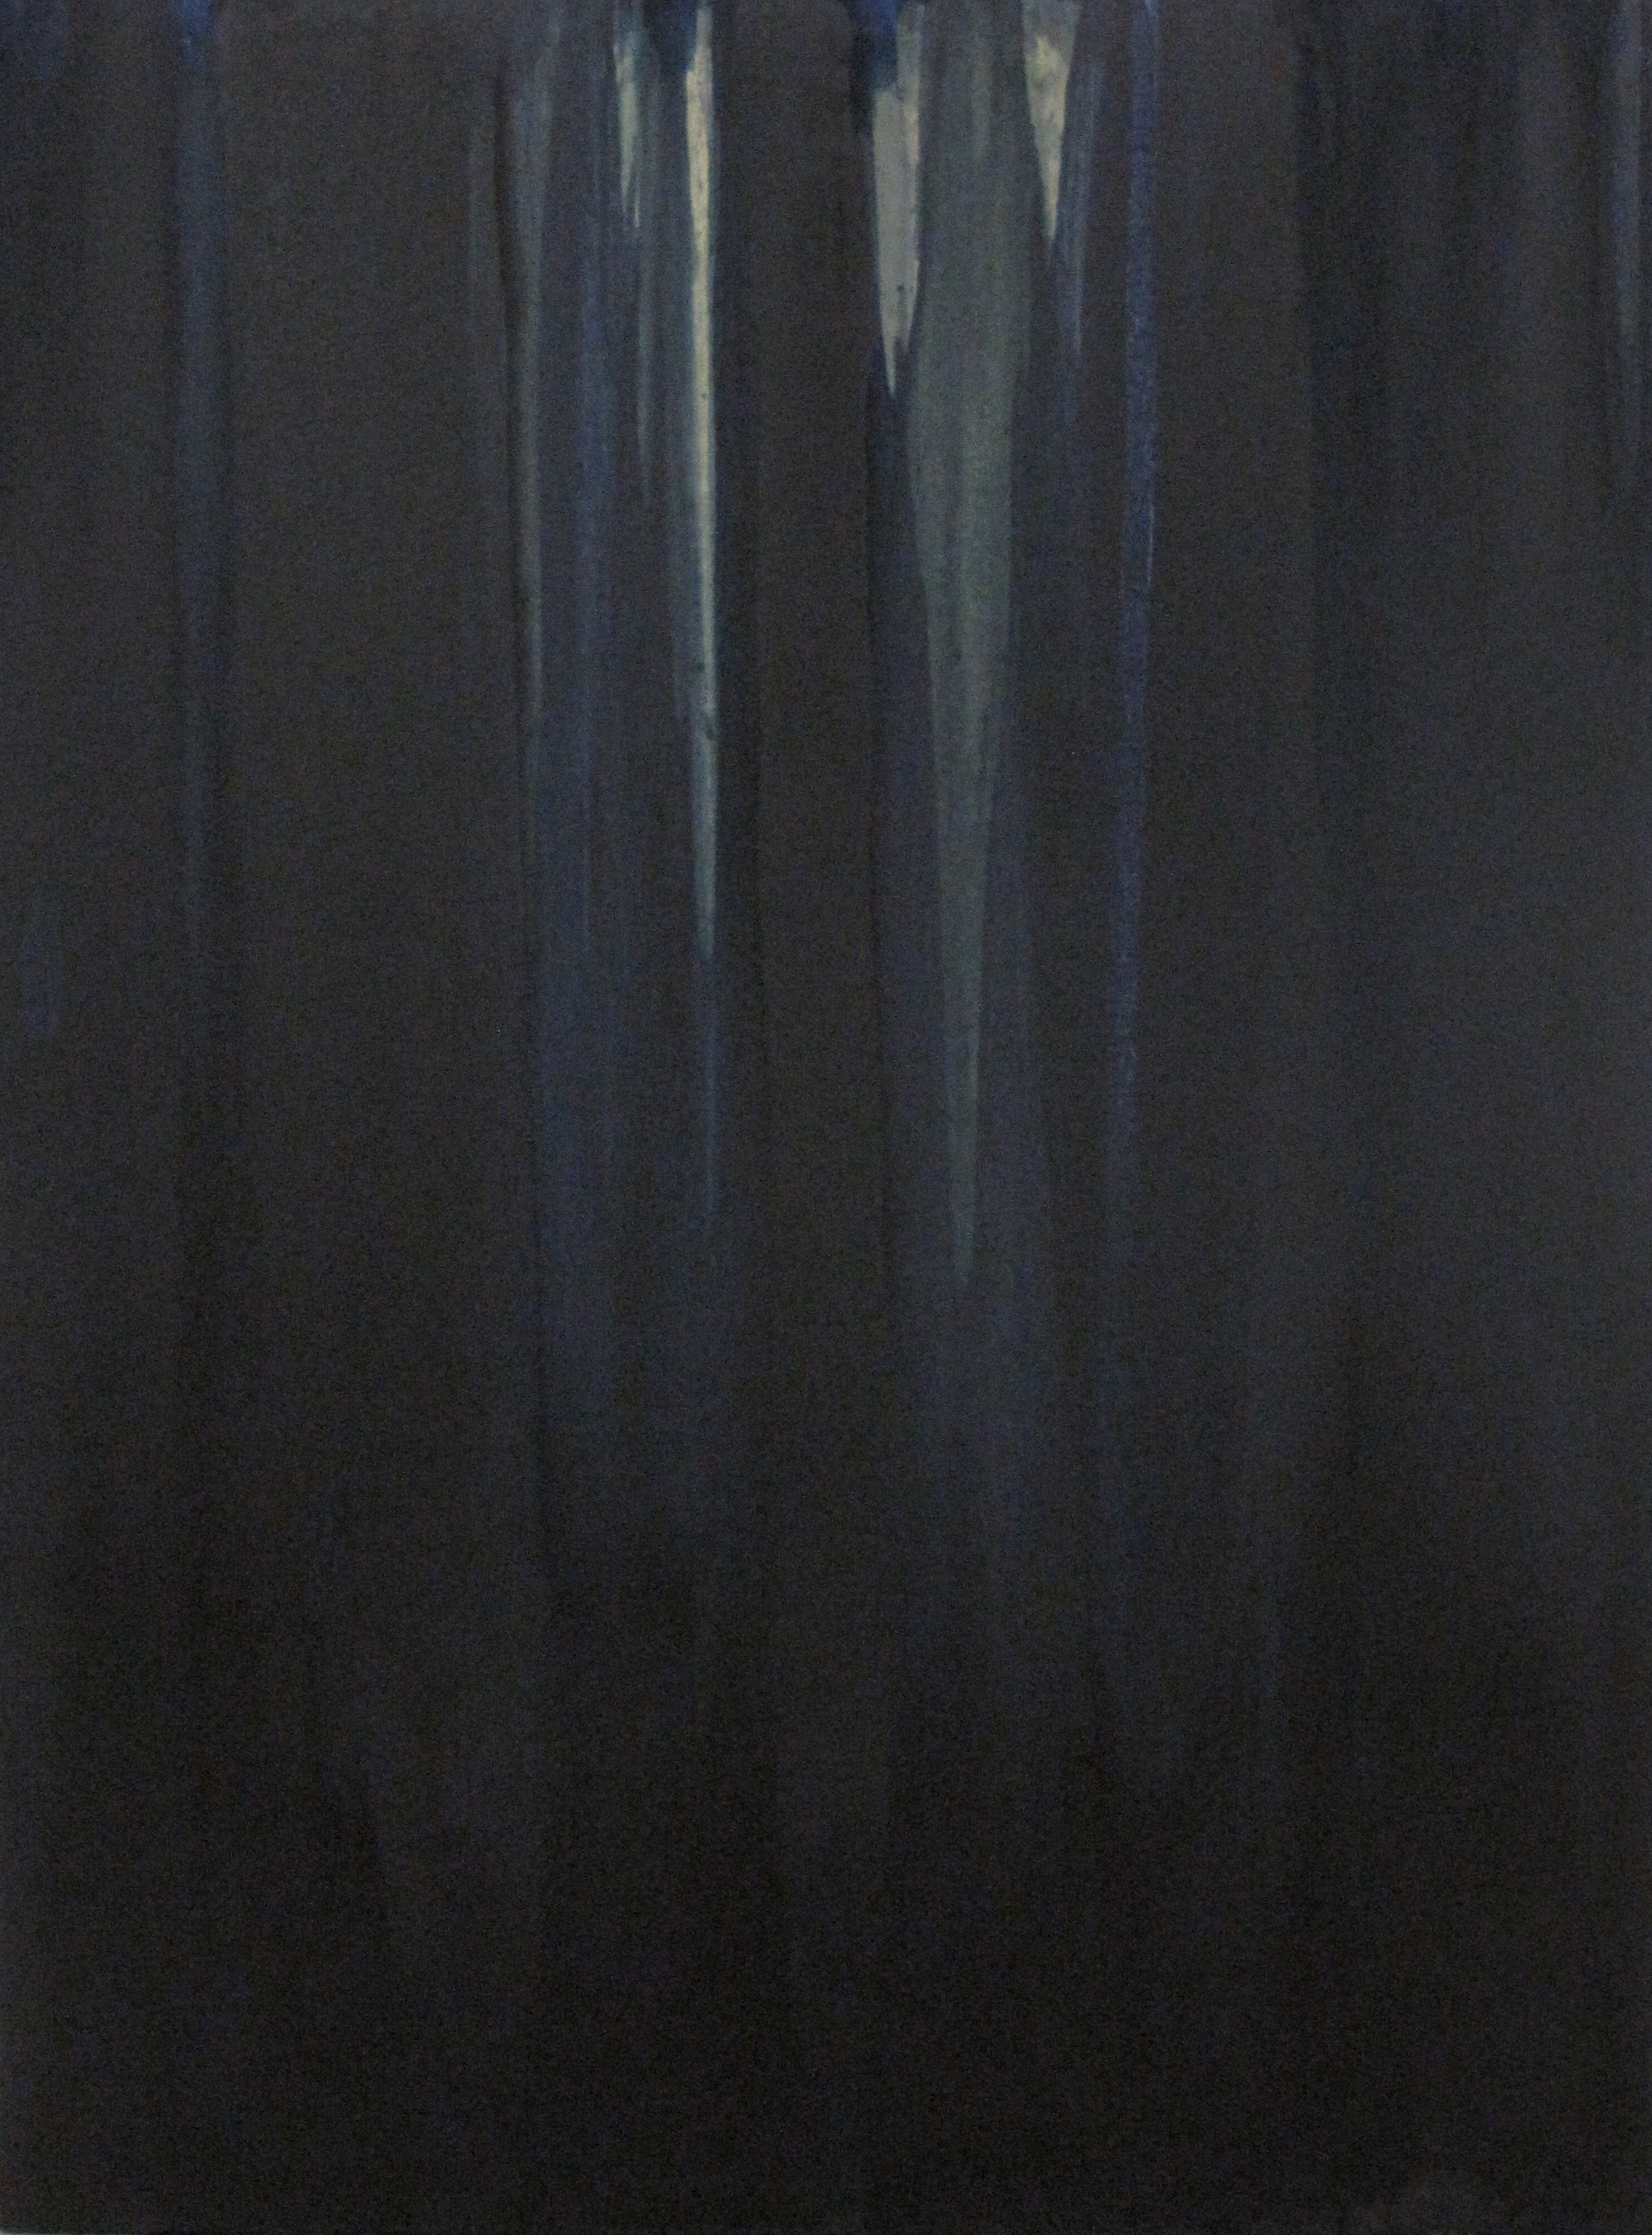 Luke HENG  No.60/2 (Blue)  2012 Oil and Pigment on Canvas 100 x 80 cm